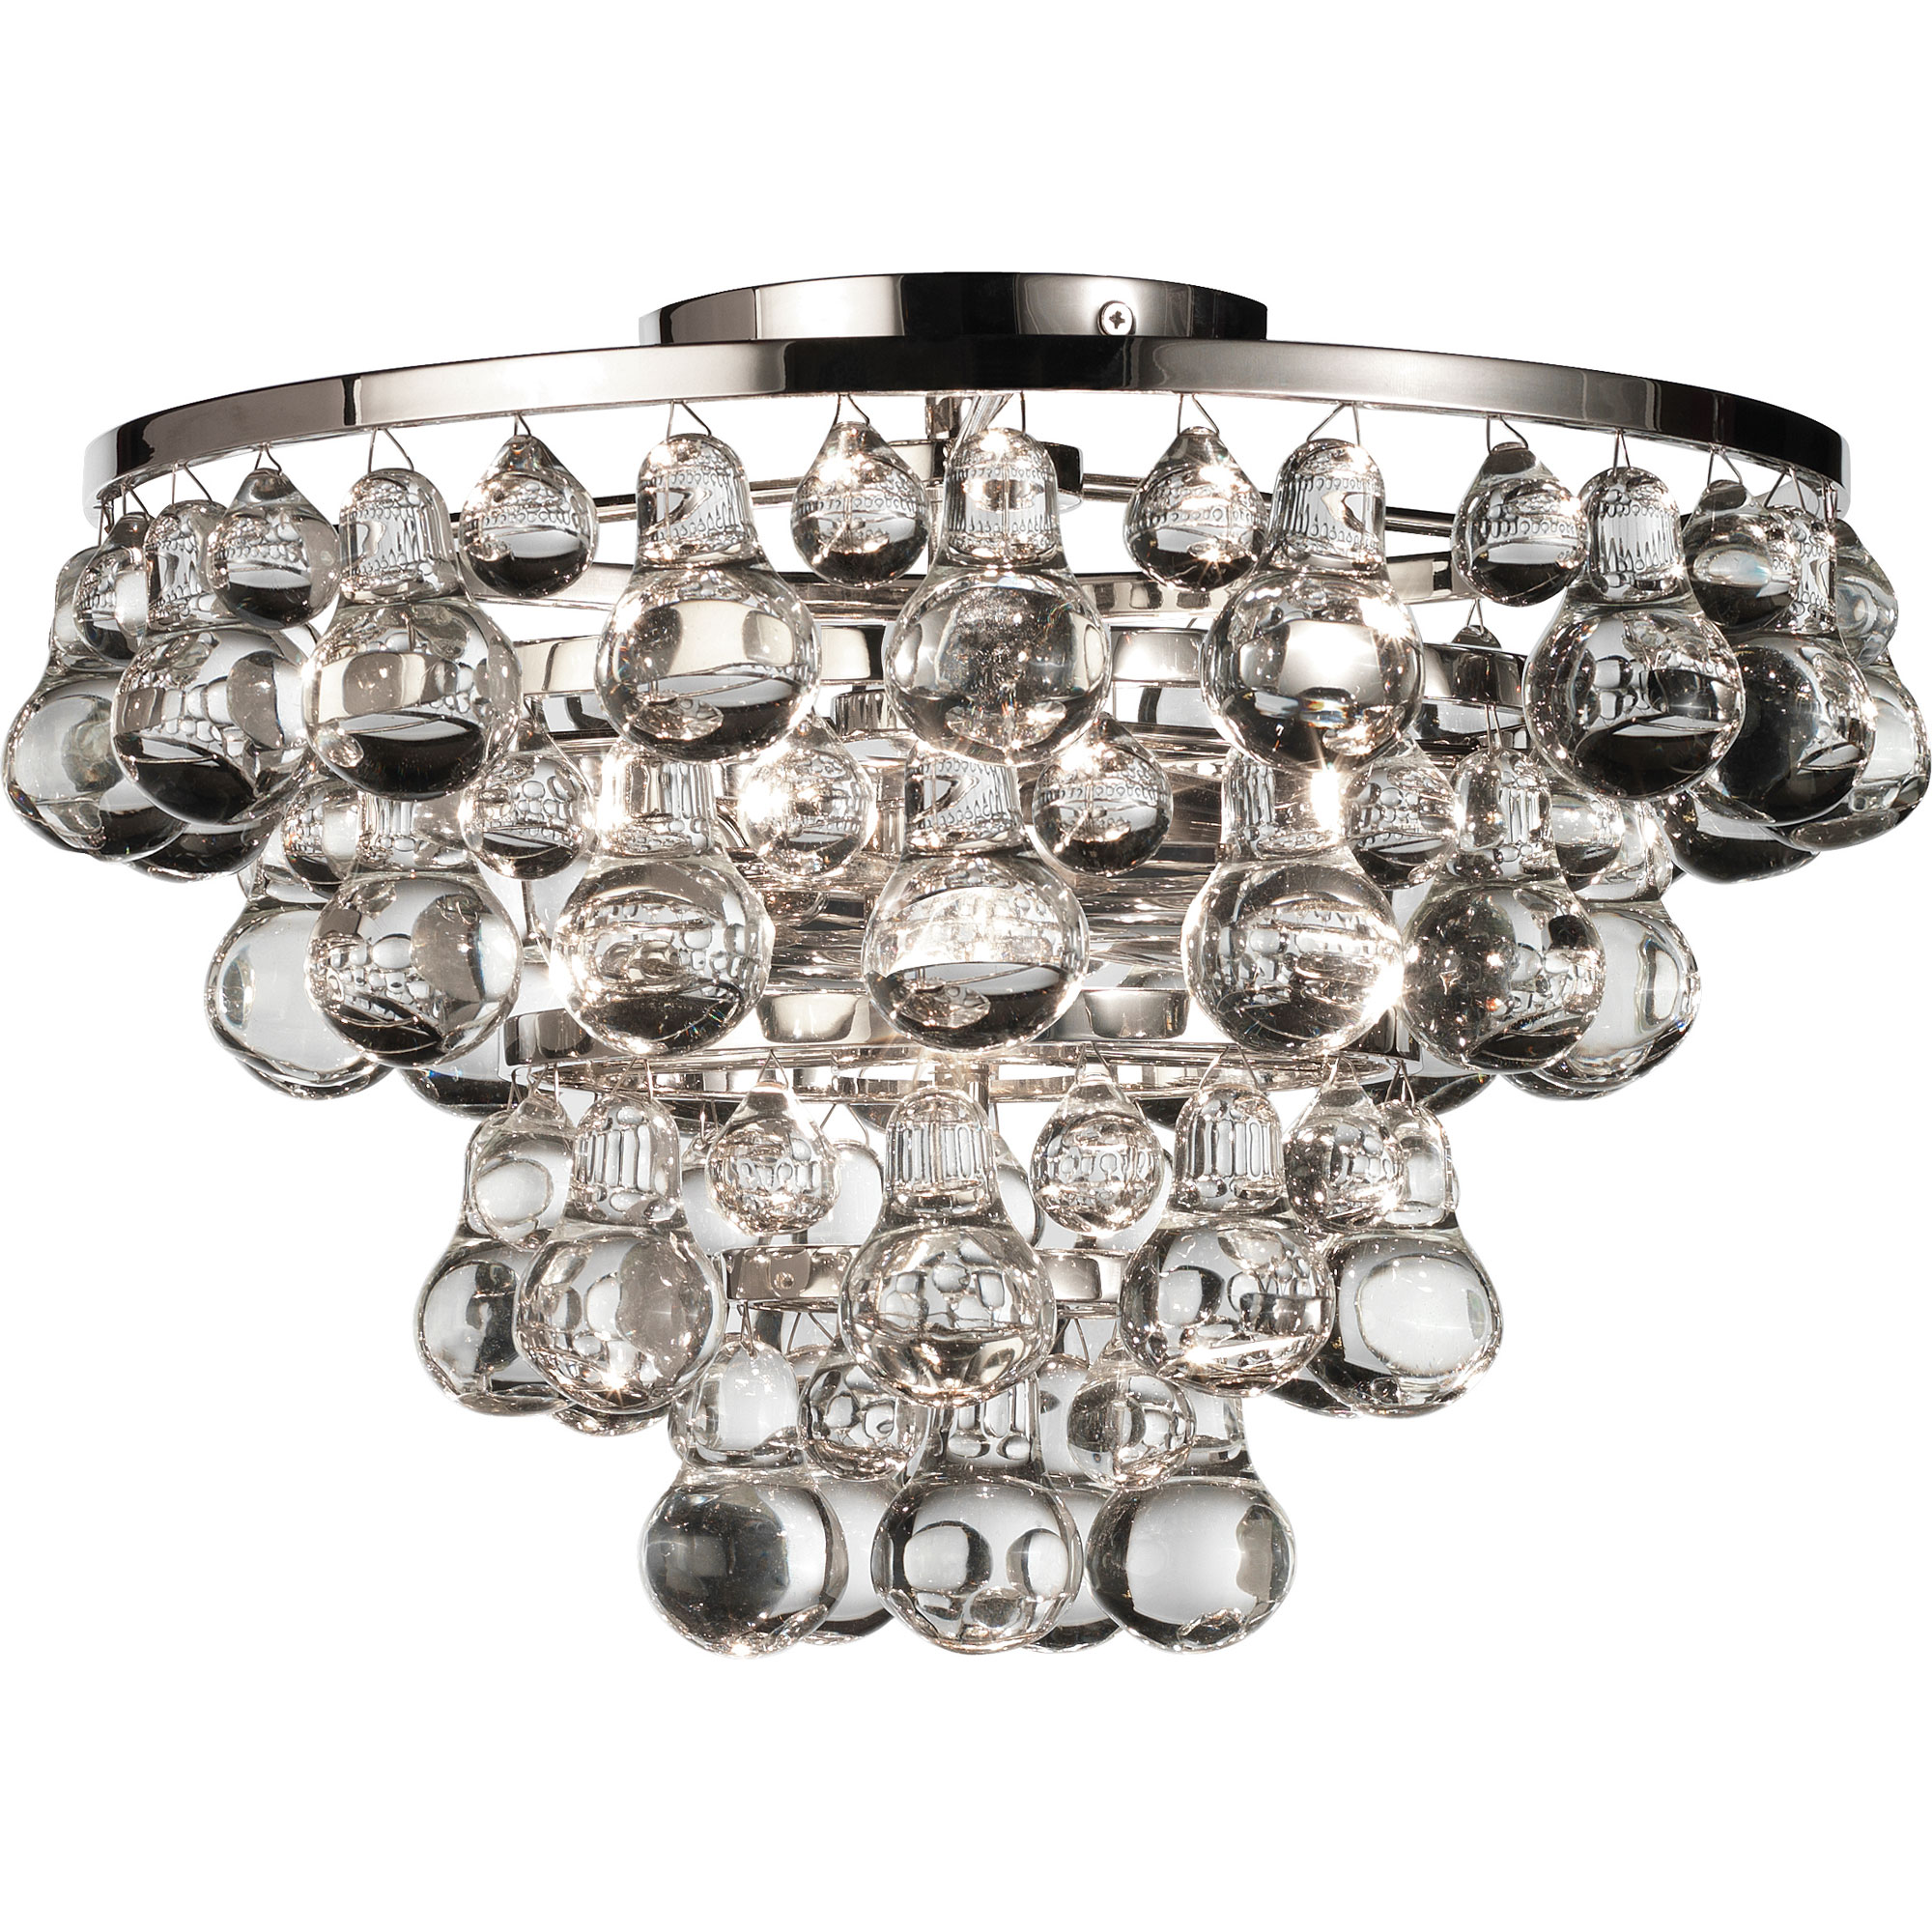 Ceiling Light Fixture by Robert Abbey